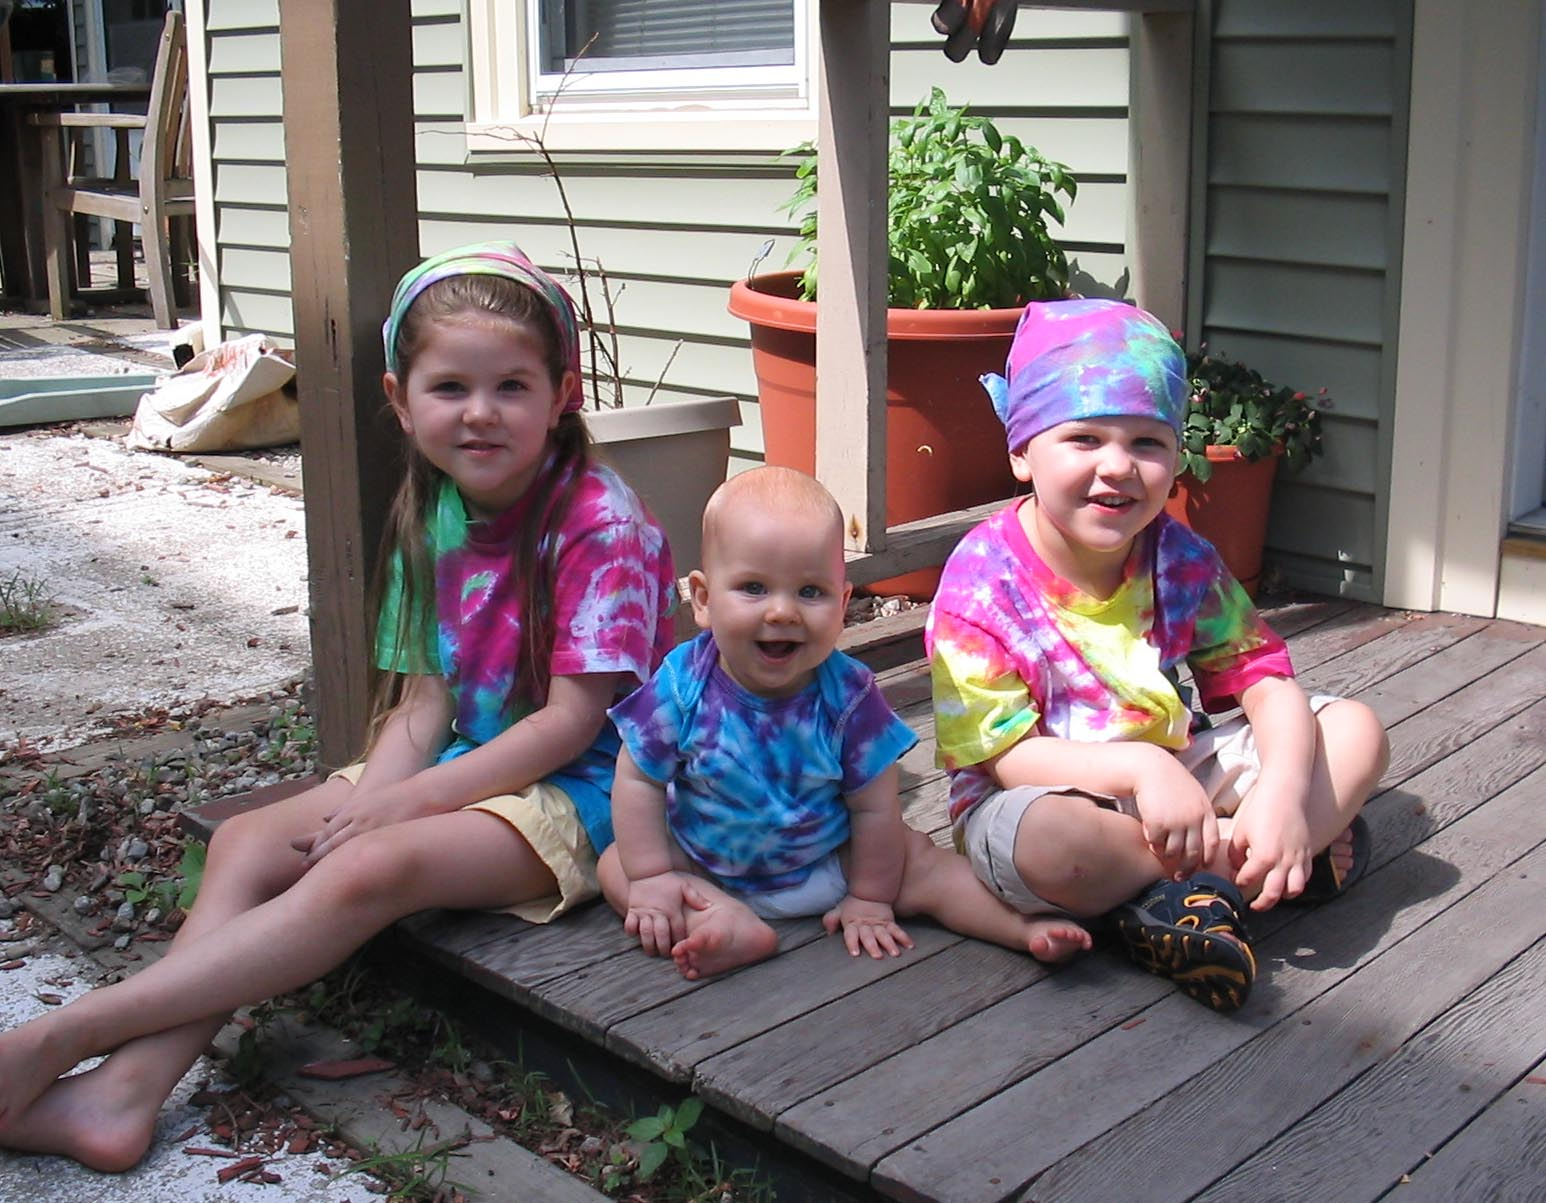 Three white children sitting on a porch wearing various tye-dye clothing.